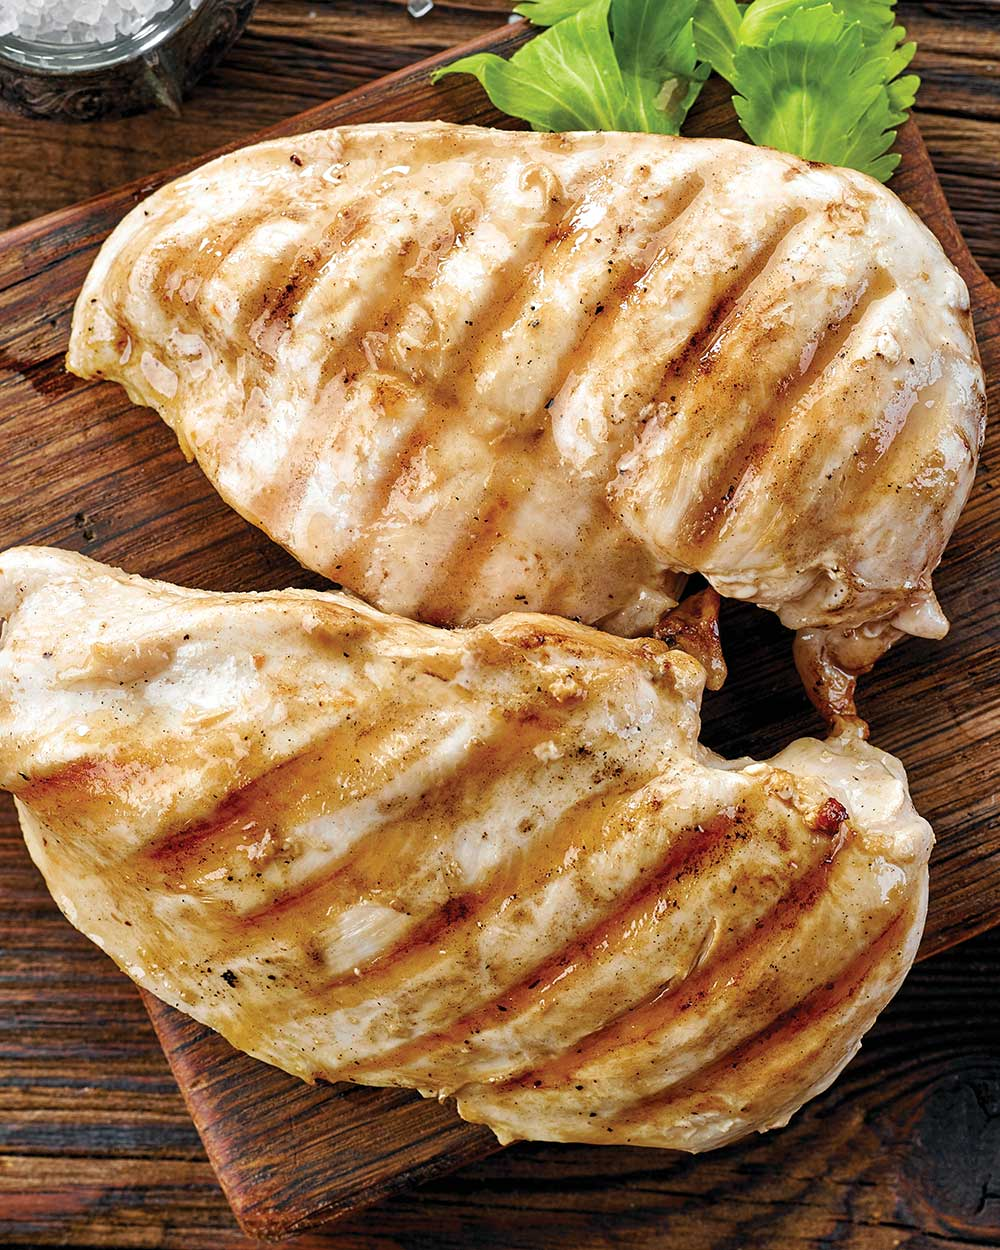 Grilled and Marinated Chicken Breast